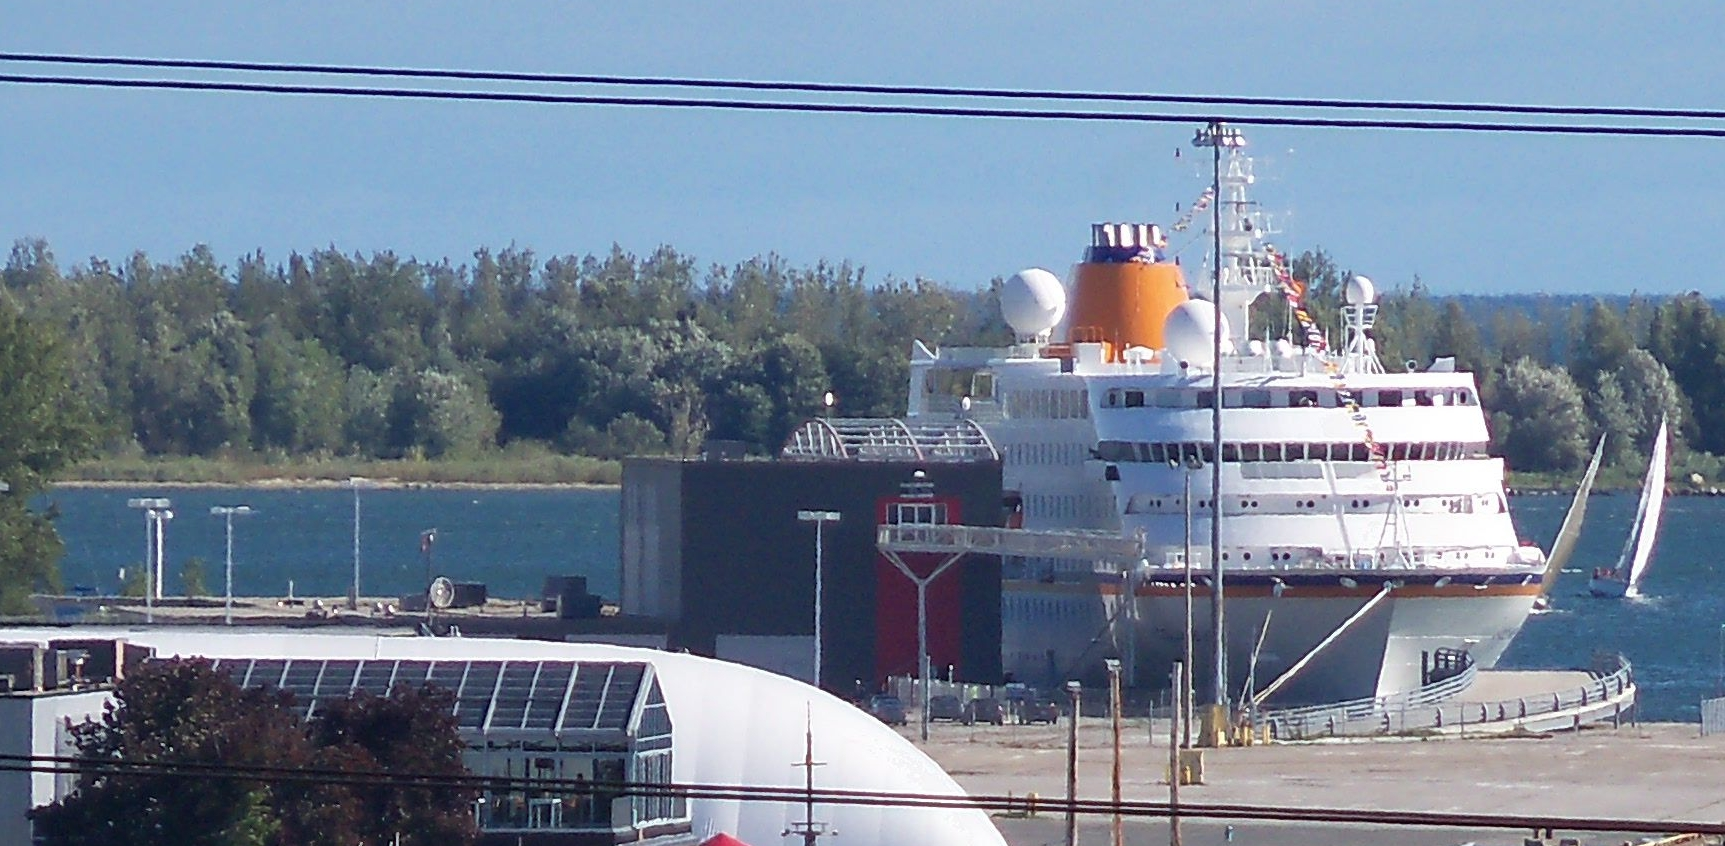 FileThis Cruise Ship Is Moored At What Was Once The International - How many mph does a cruise ship go